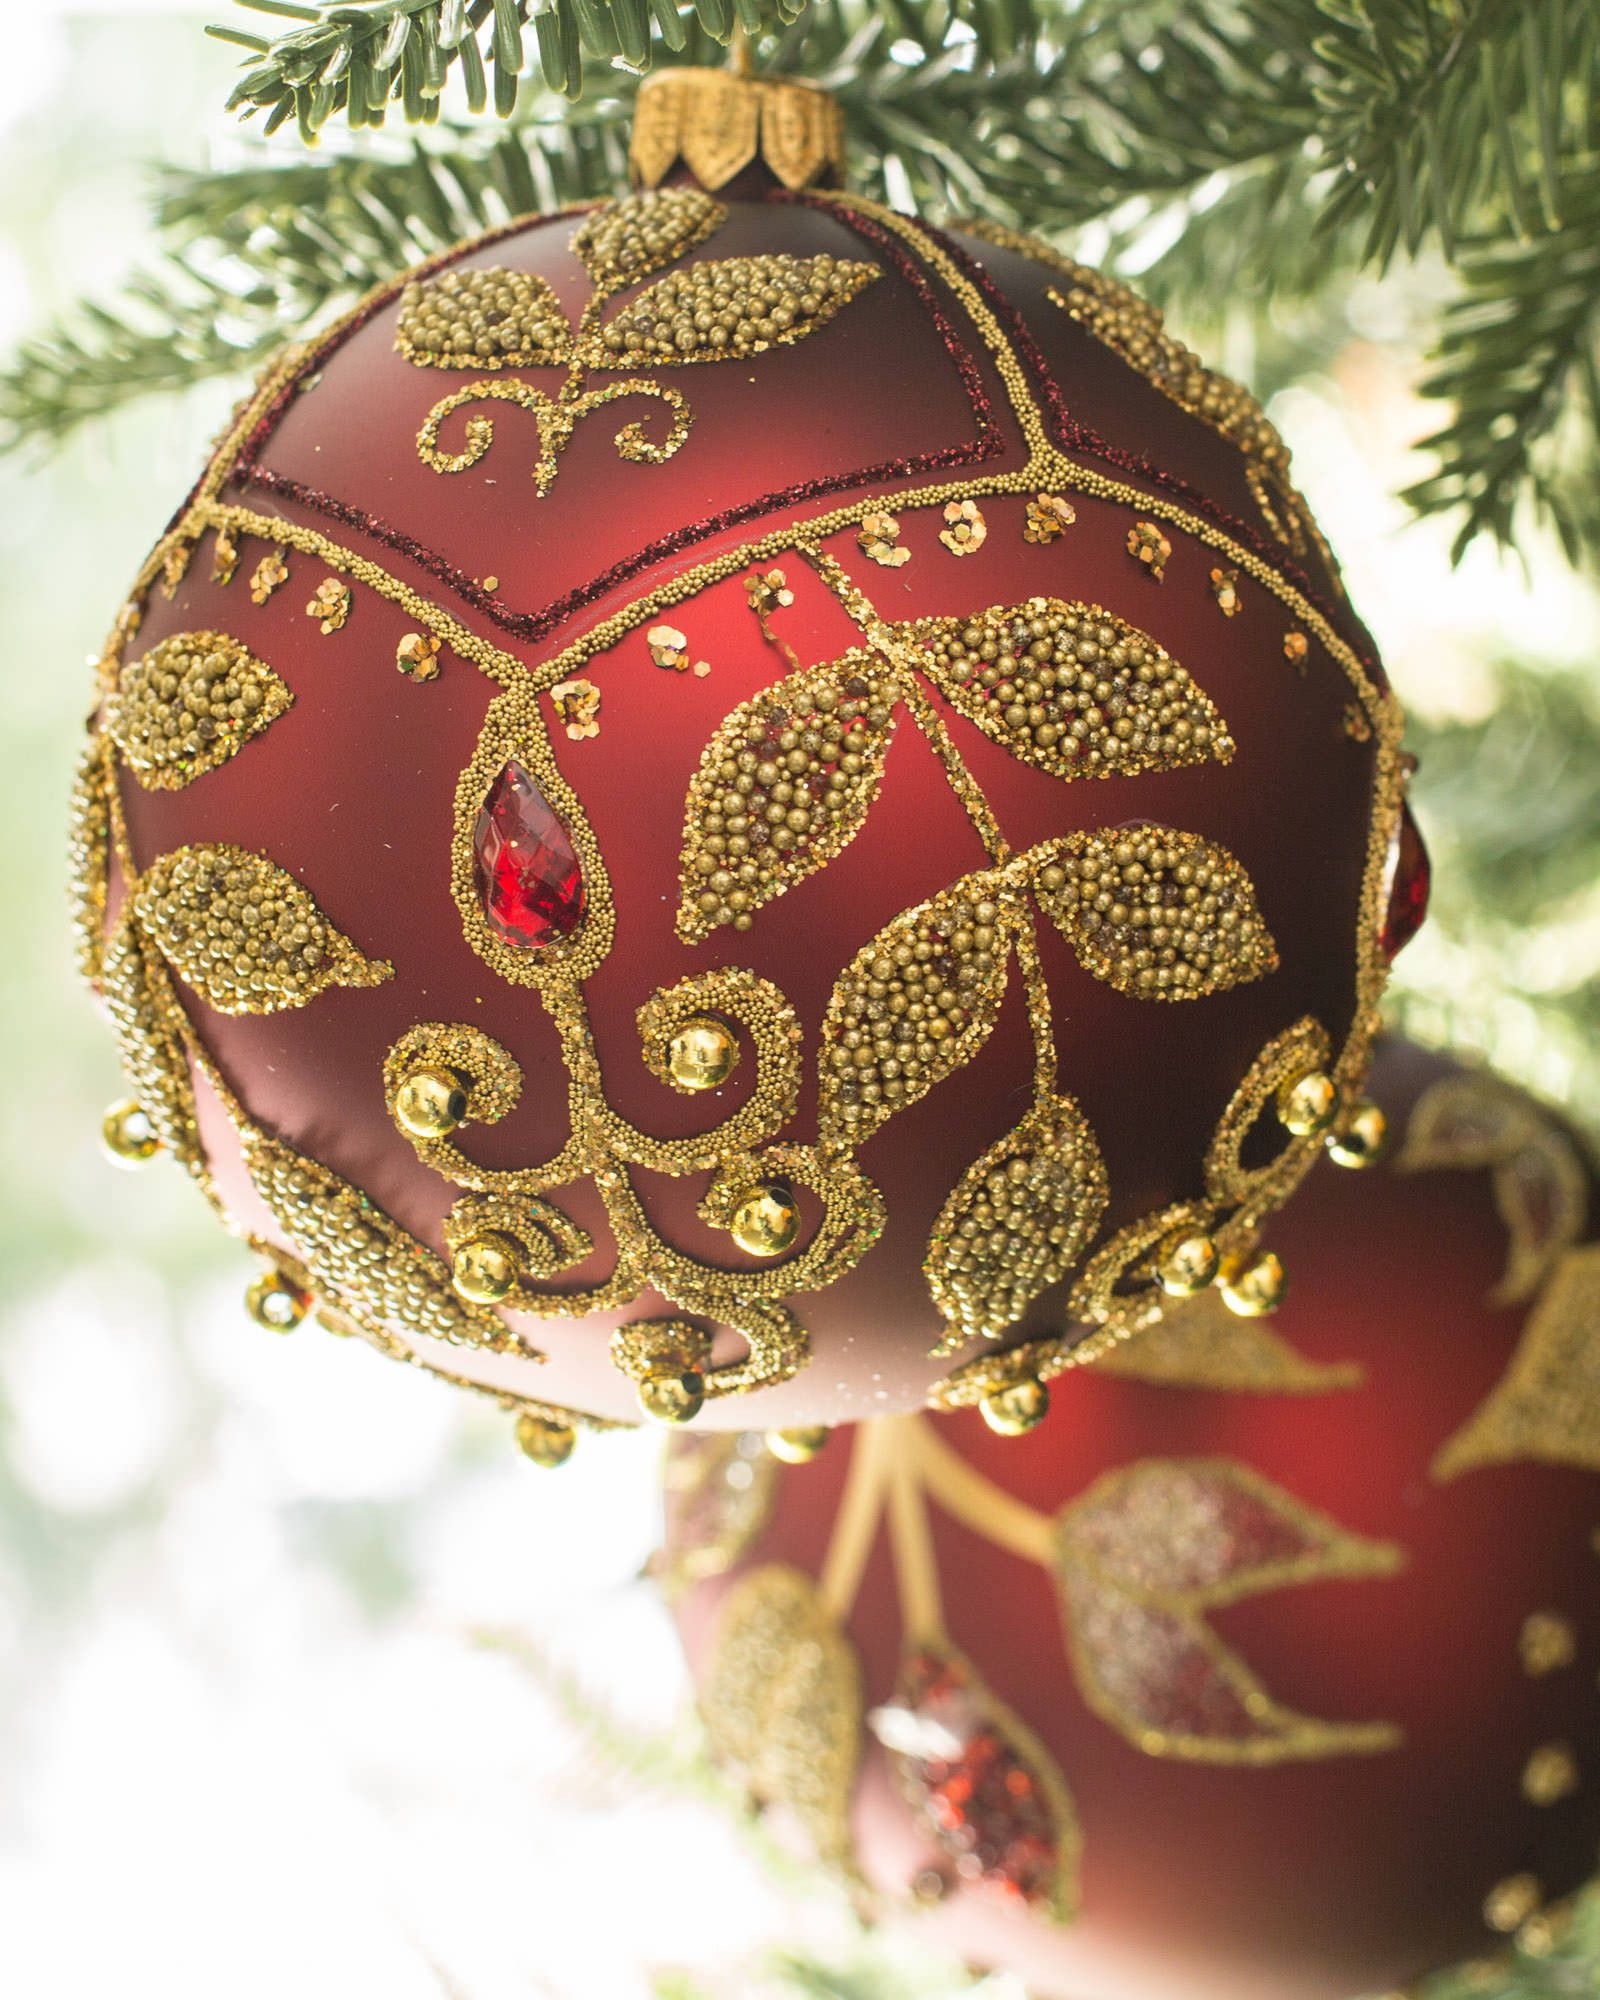 Decorated Glass Ball Ornaments,Set of 4 | Balsam Hill